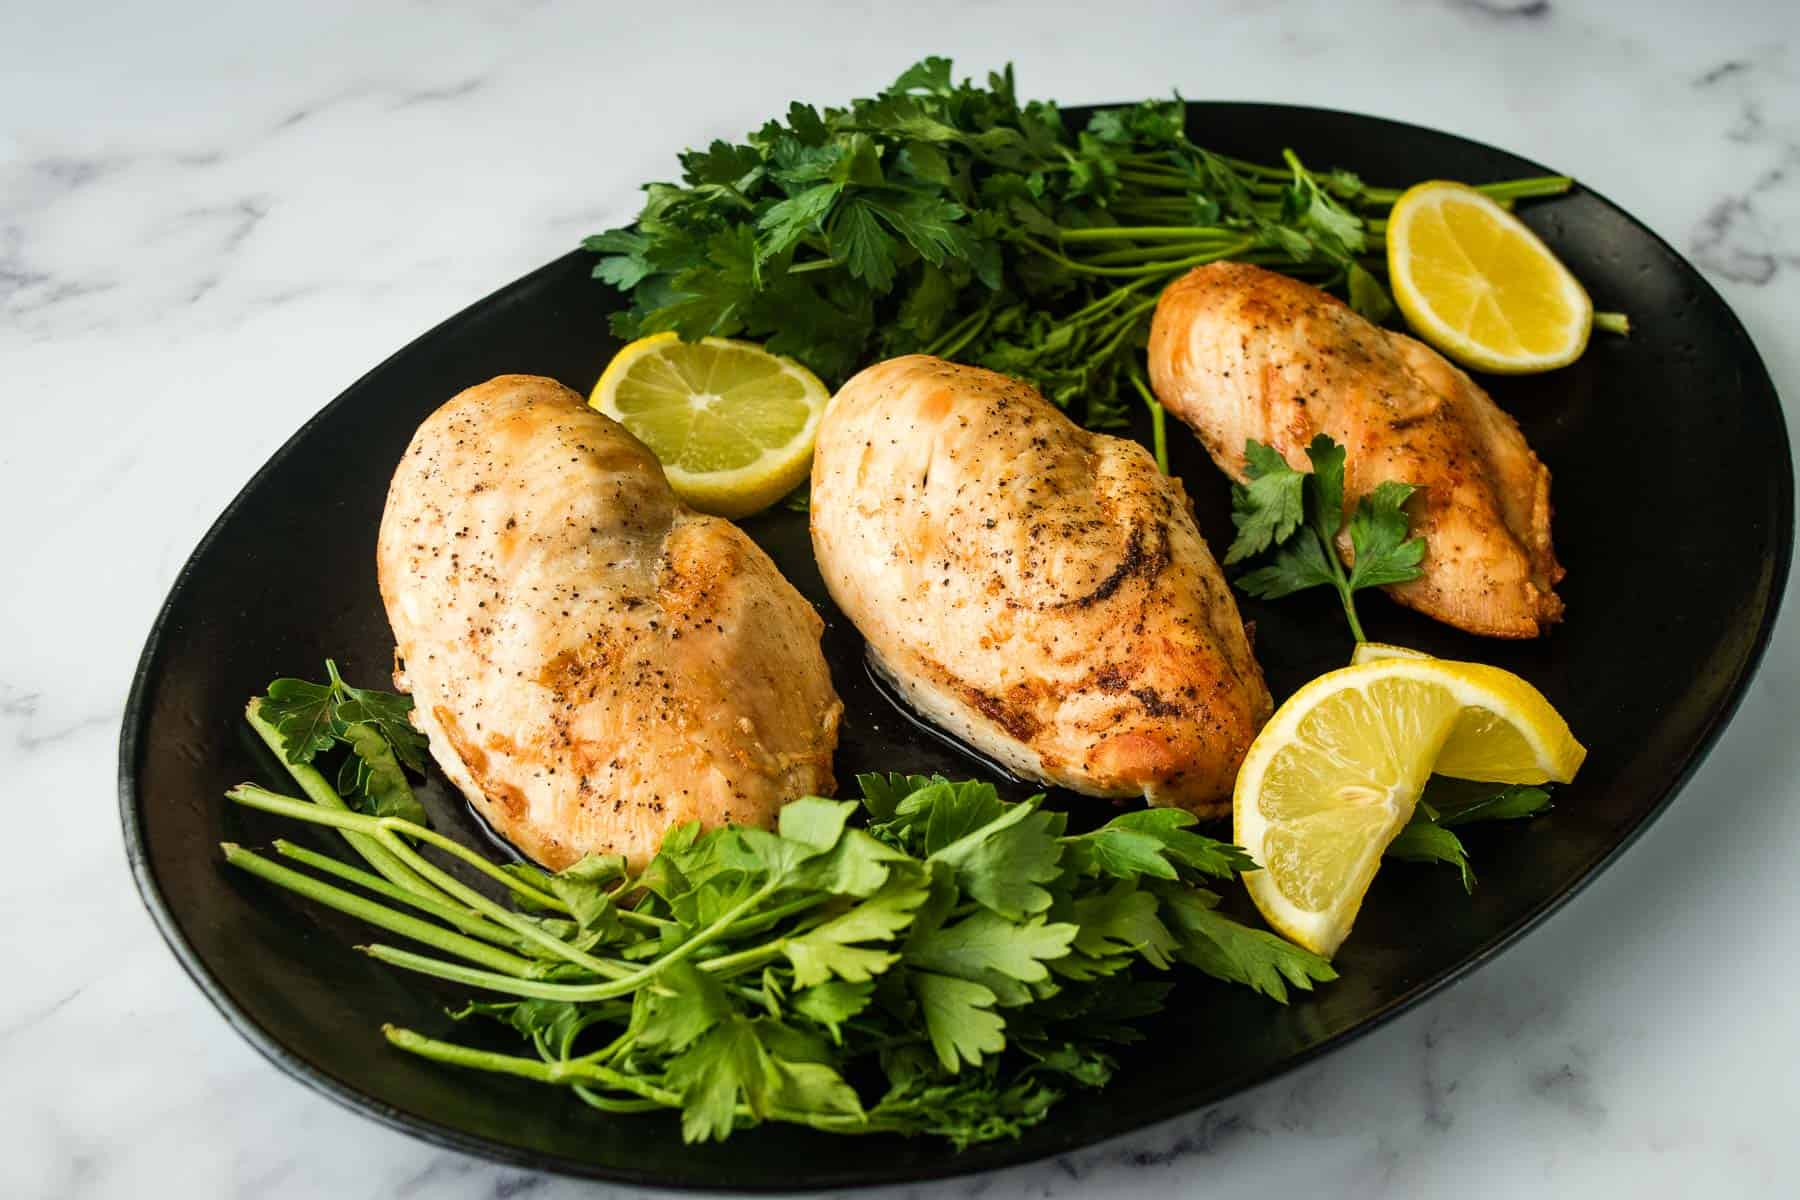 Juicy and tender chicken fillets.